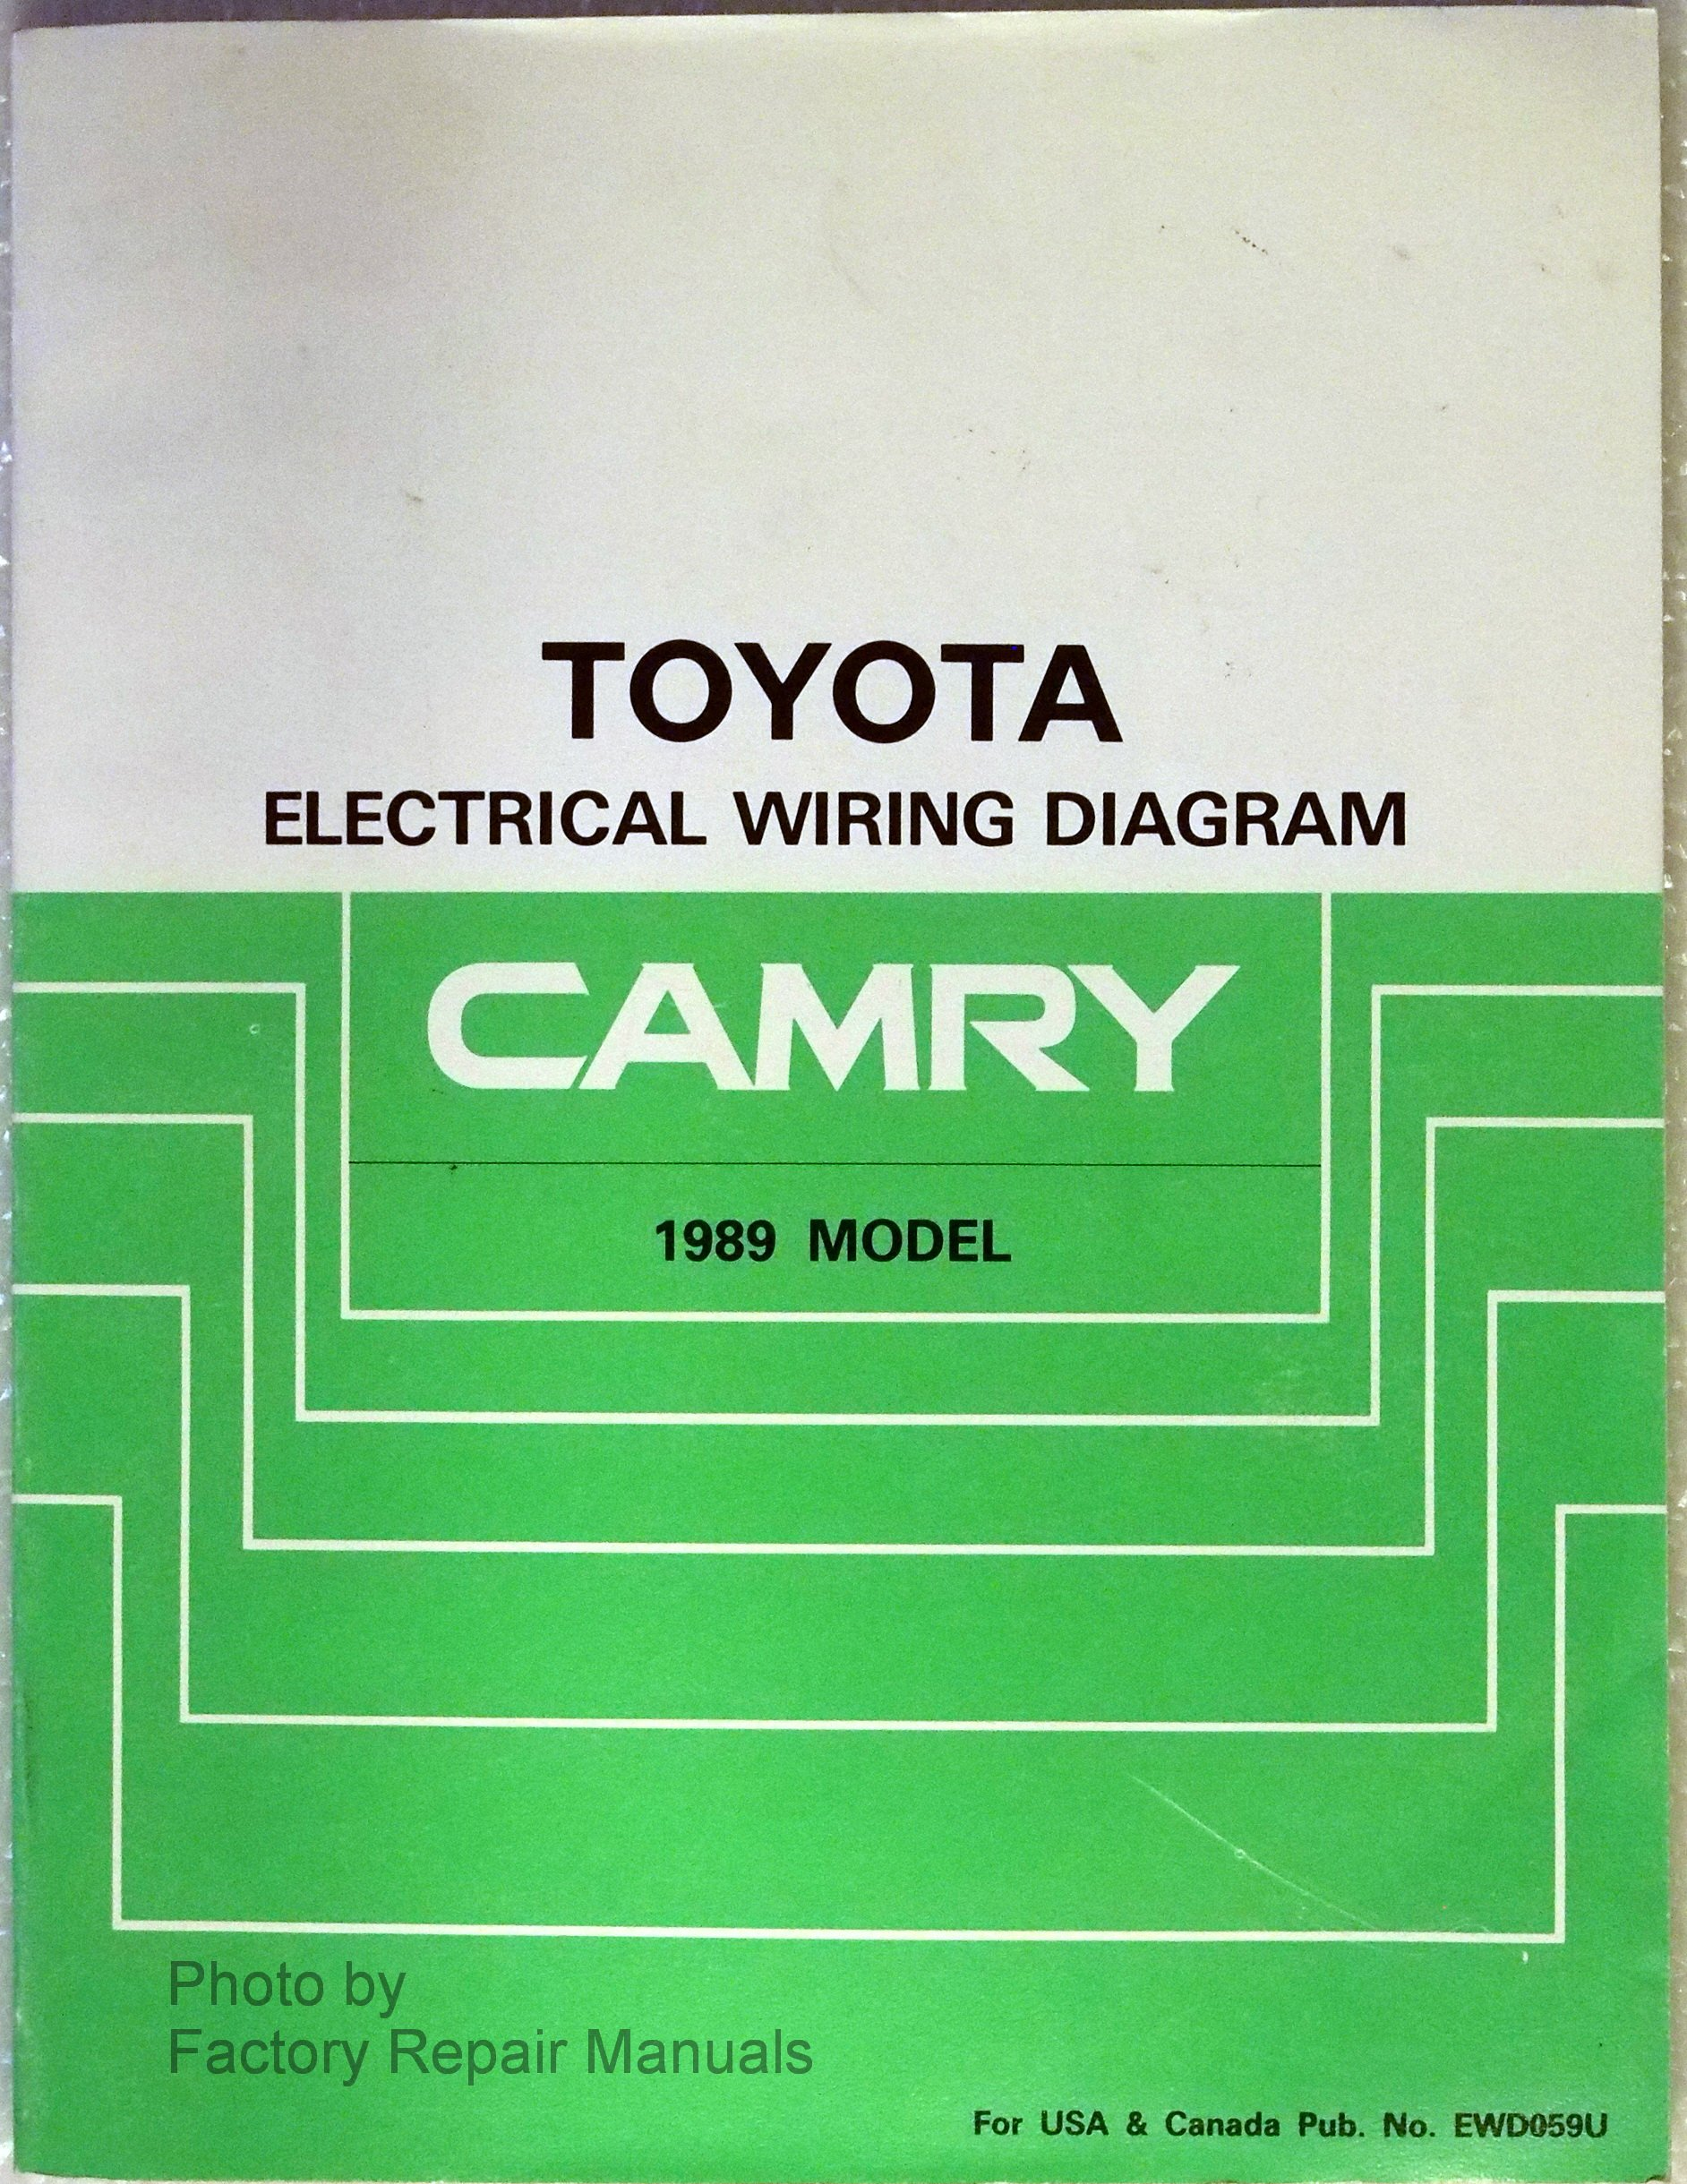 1989 Toyota Camry Electrical Wiring Diagram Manual (Toyota ...